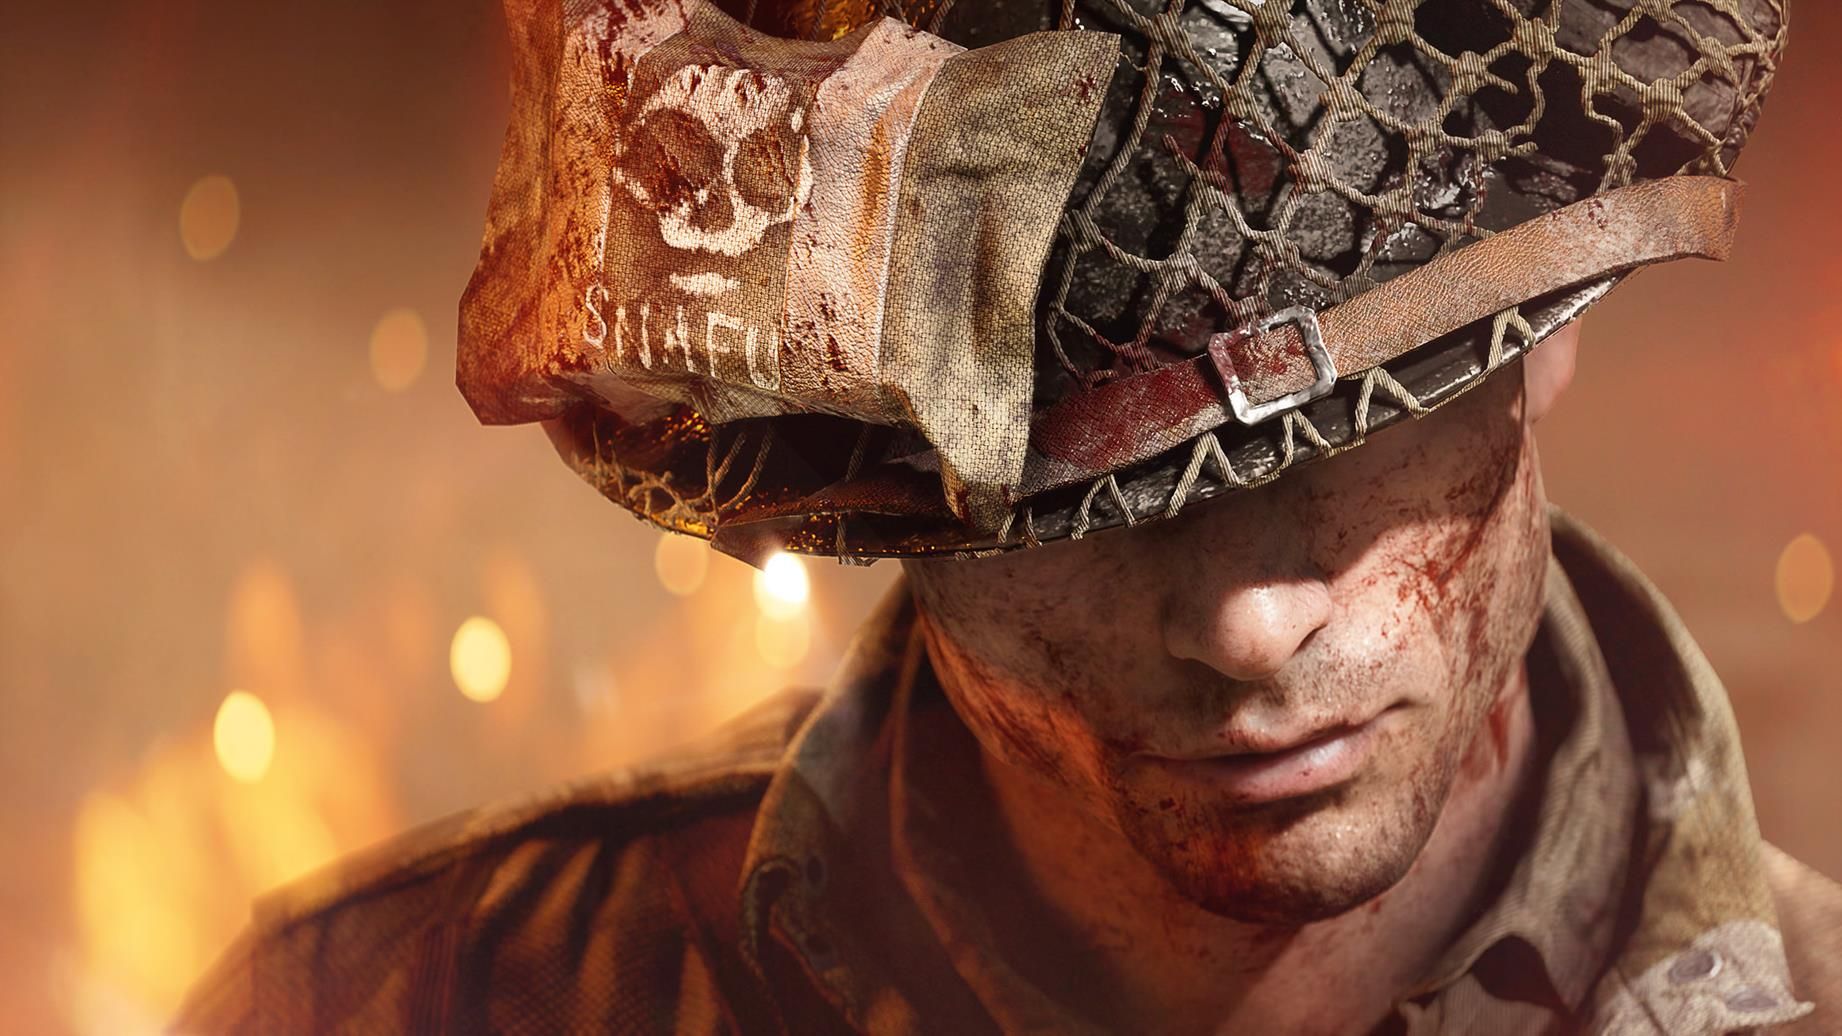 Battlefield 5 reviews round-up, here's all the scores so far